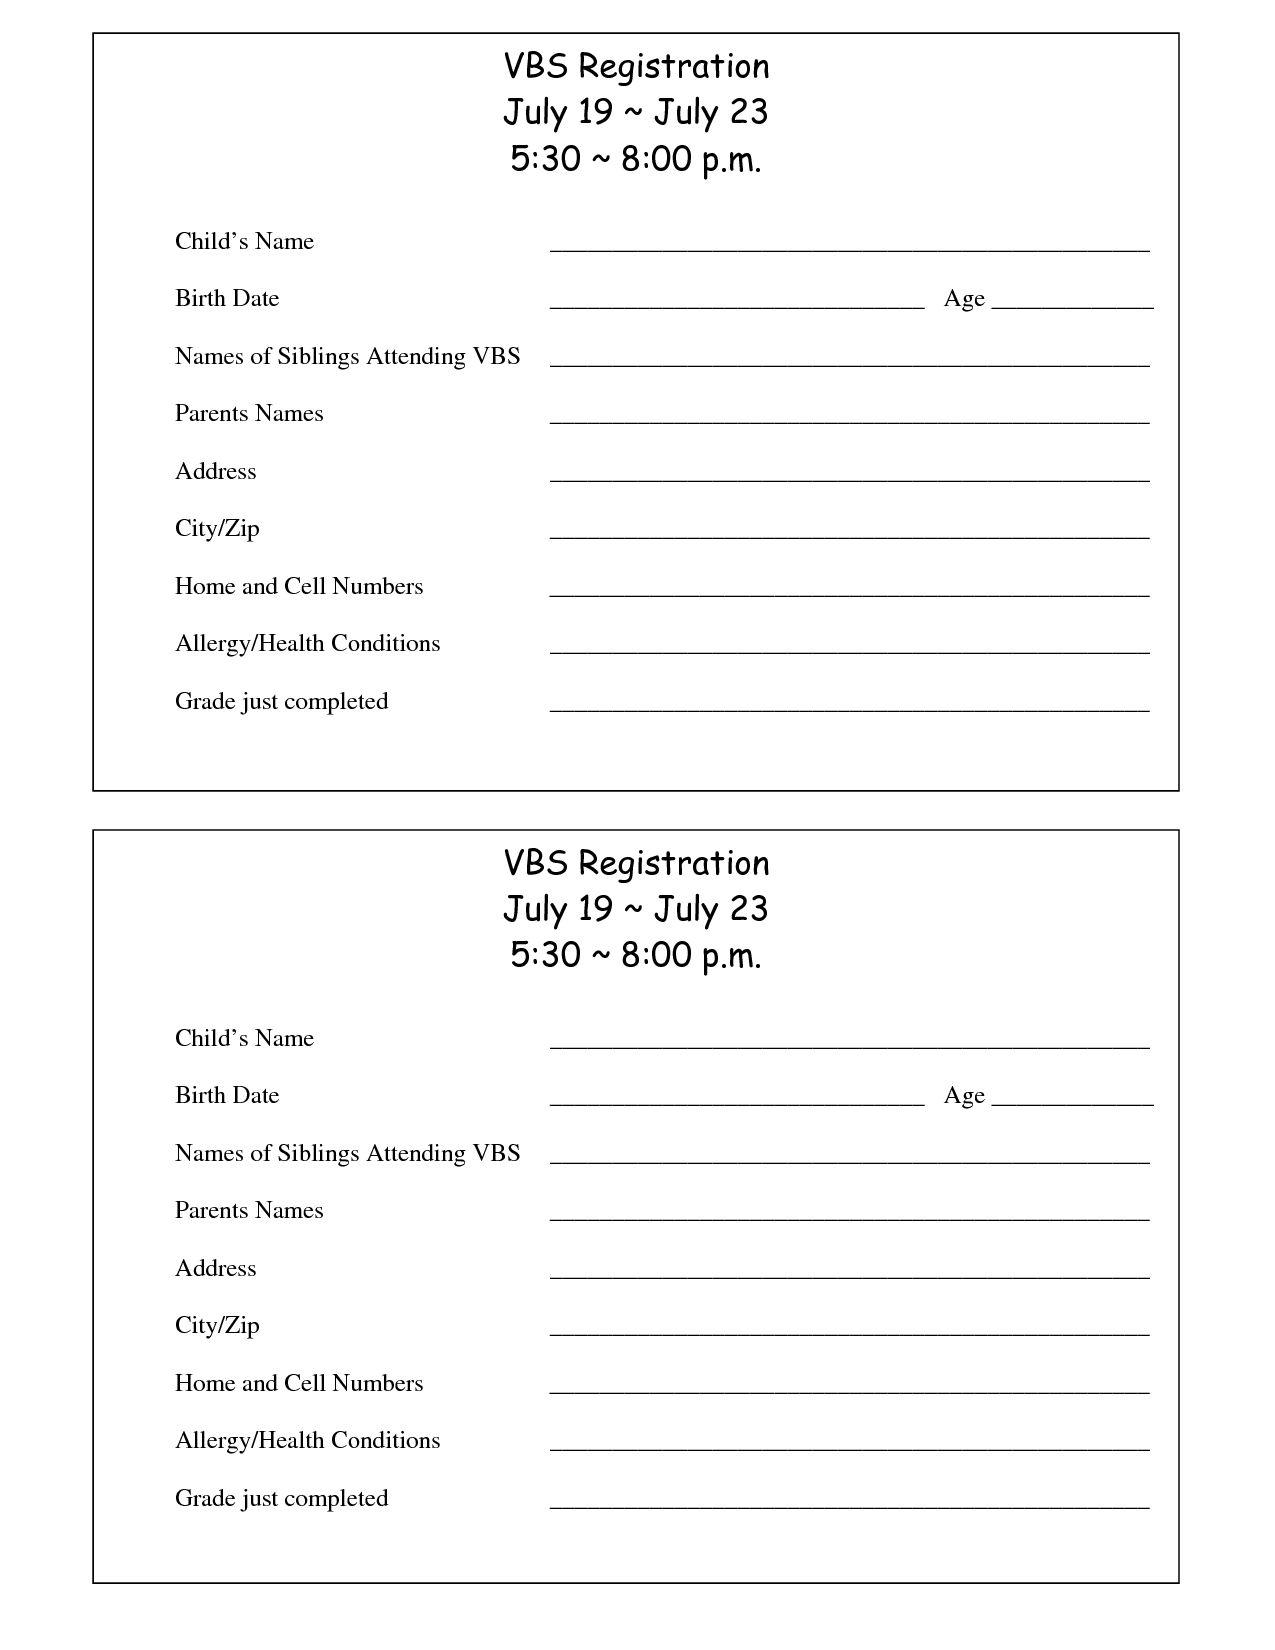 Printable Vbs Registration Form Template | Conference | Bible School - Free Printable Vacation Bible School Materials